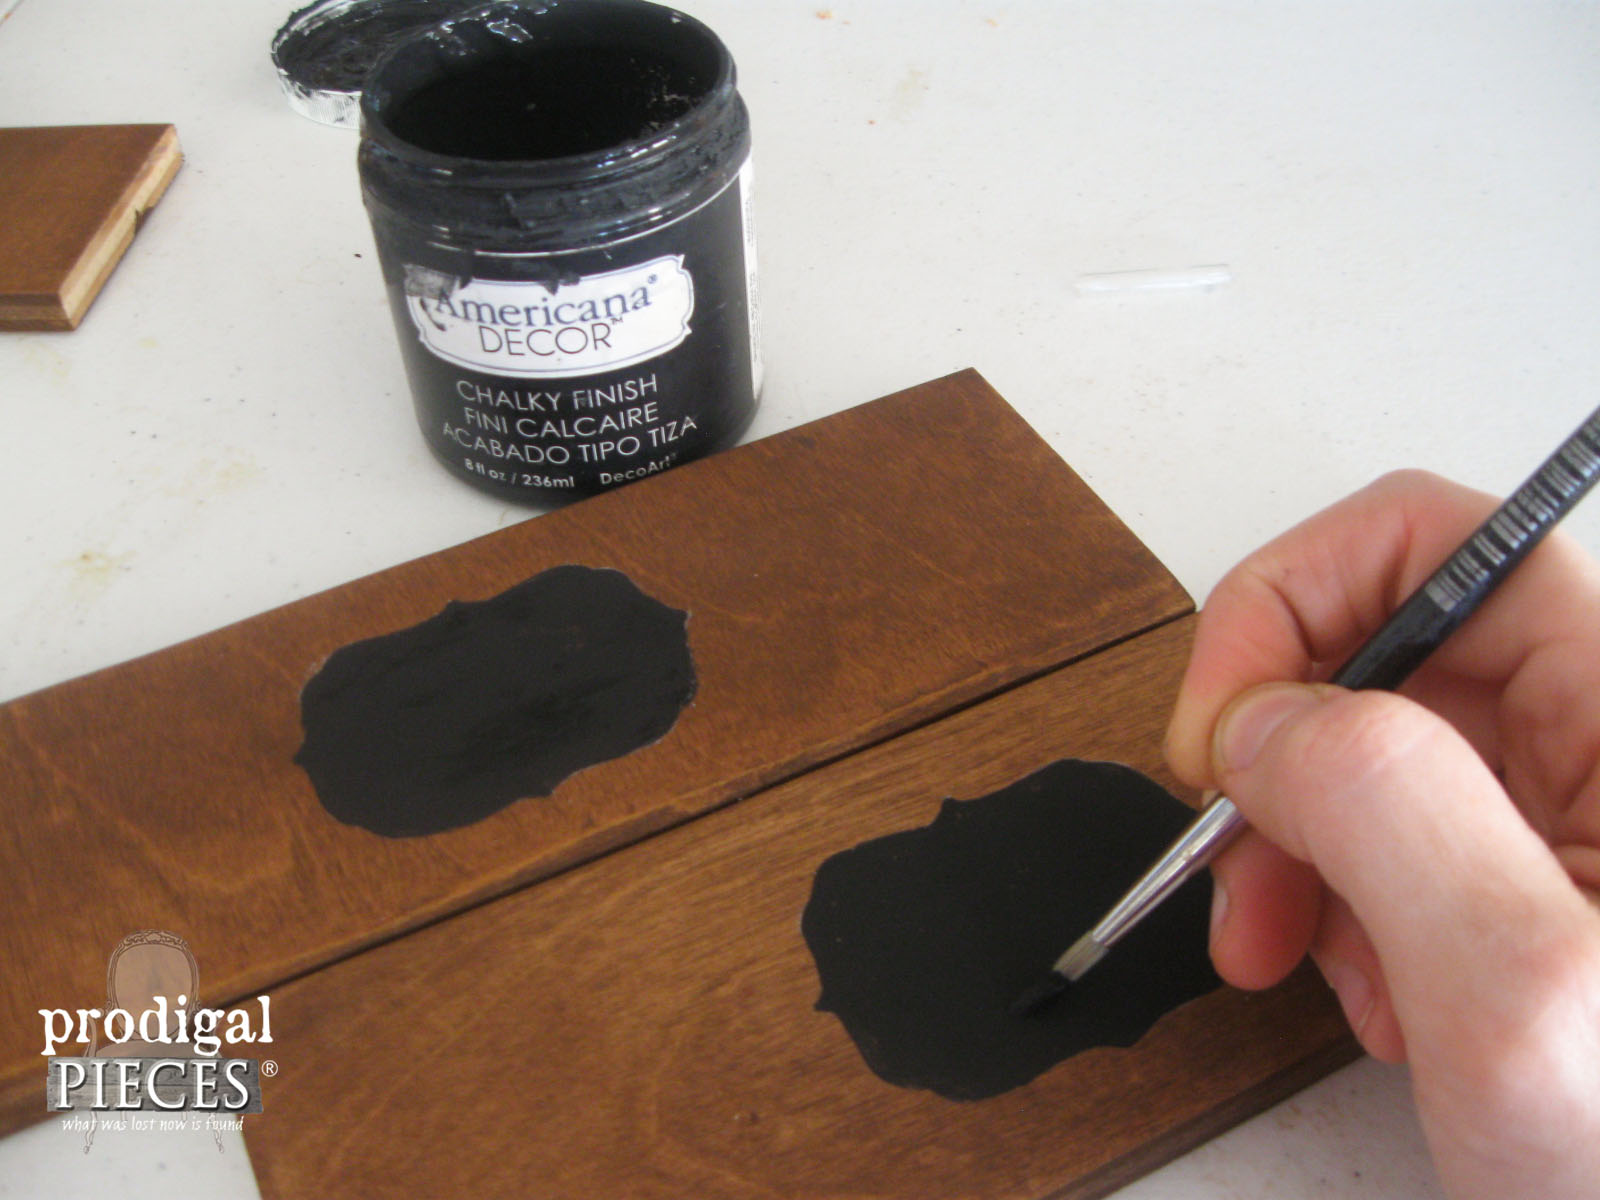 DecoArt Chalky Finish Paint for Faux Chalkboard Labels by Prodigal Pieces | www.prodigalpieces.com